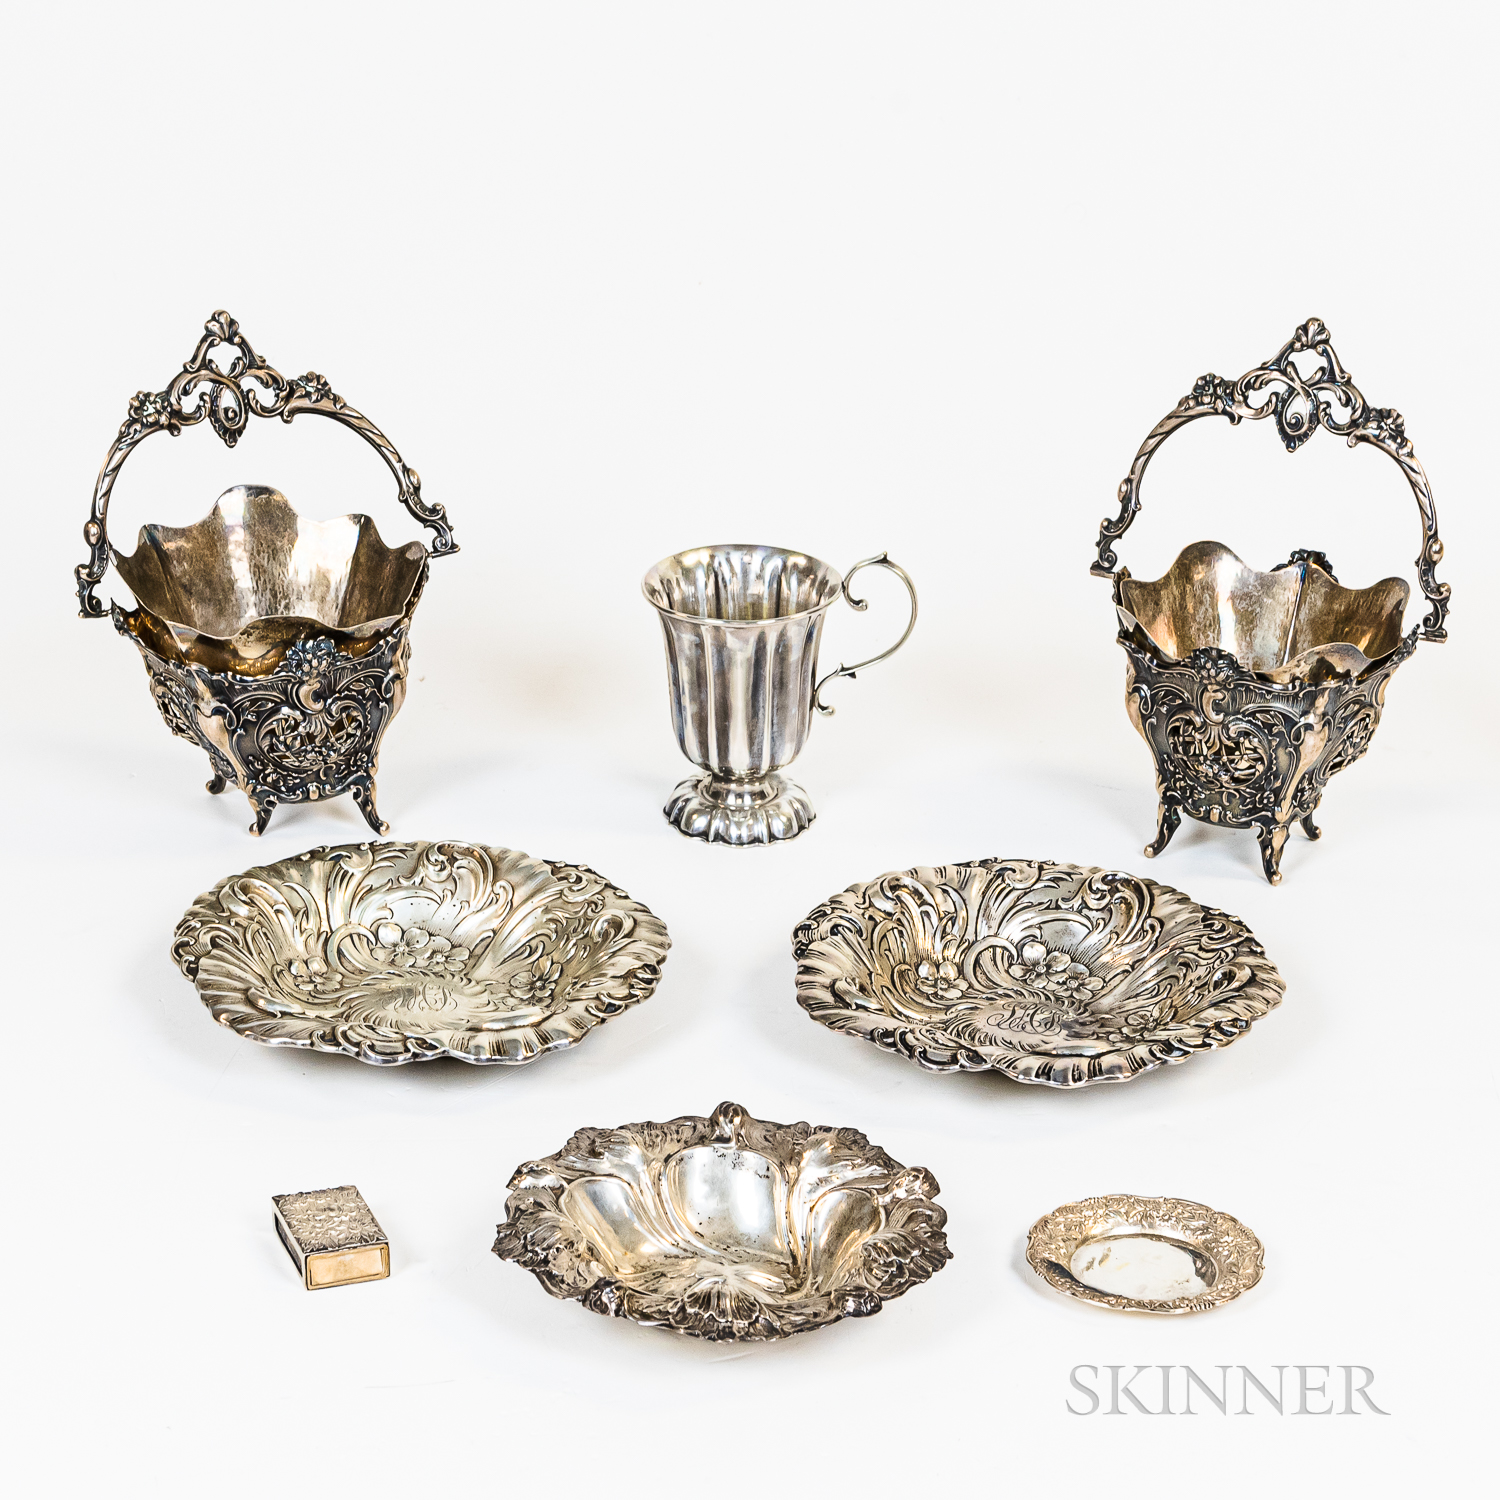 Group of Sterling Silver, .800 Silver, and Silver-plated Tableware